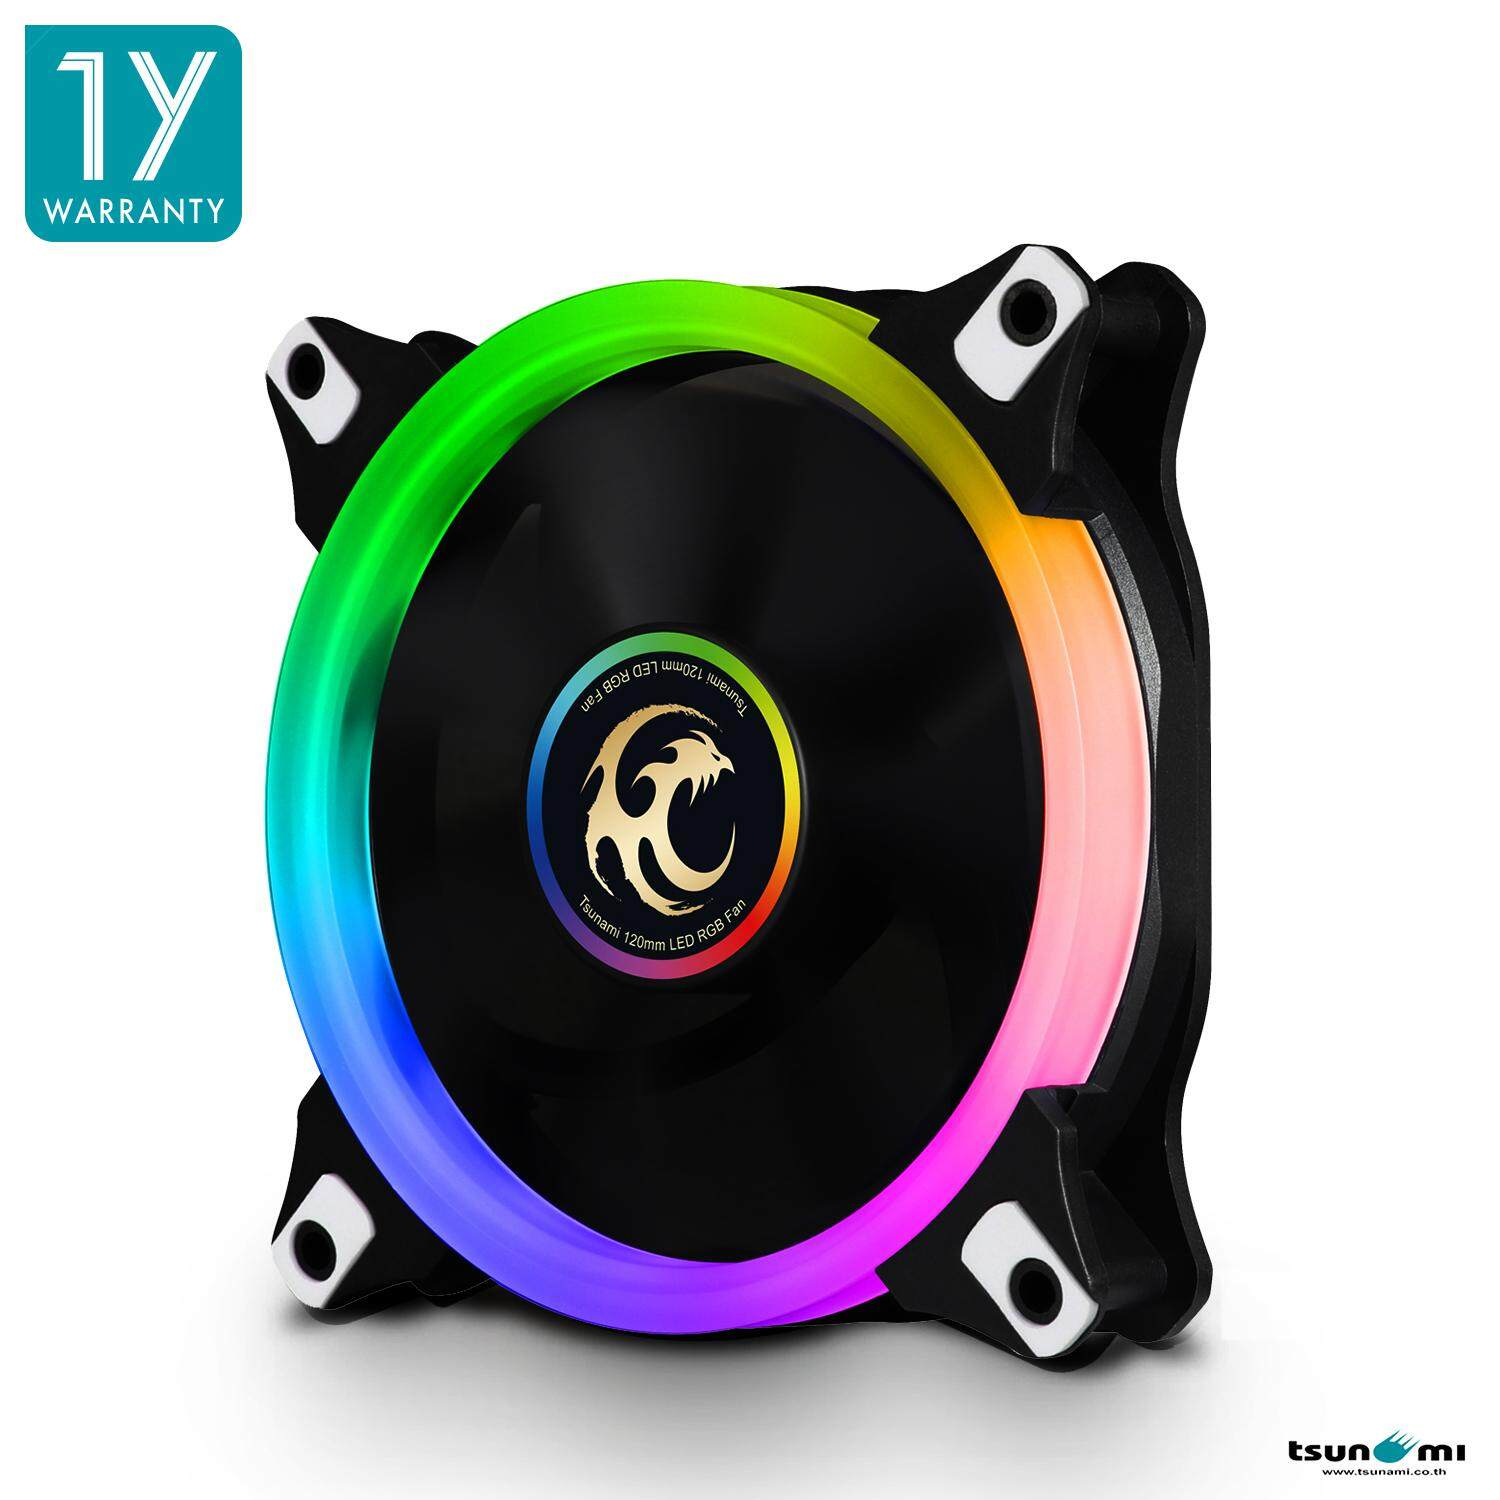 (ชุดเพิ่มเติม) (no Hub/no Remote) Tsunami Circle Series Mono-Rim Rgb-120 Rgb Fan X1 By Fun Republic Co.,ltd..